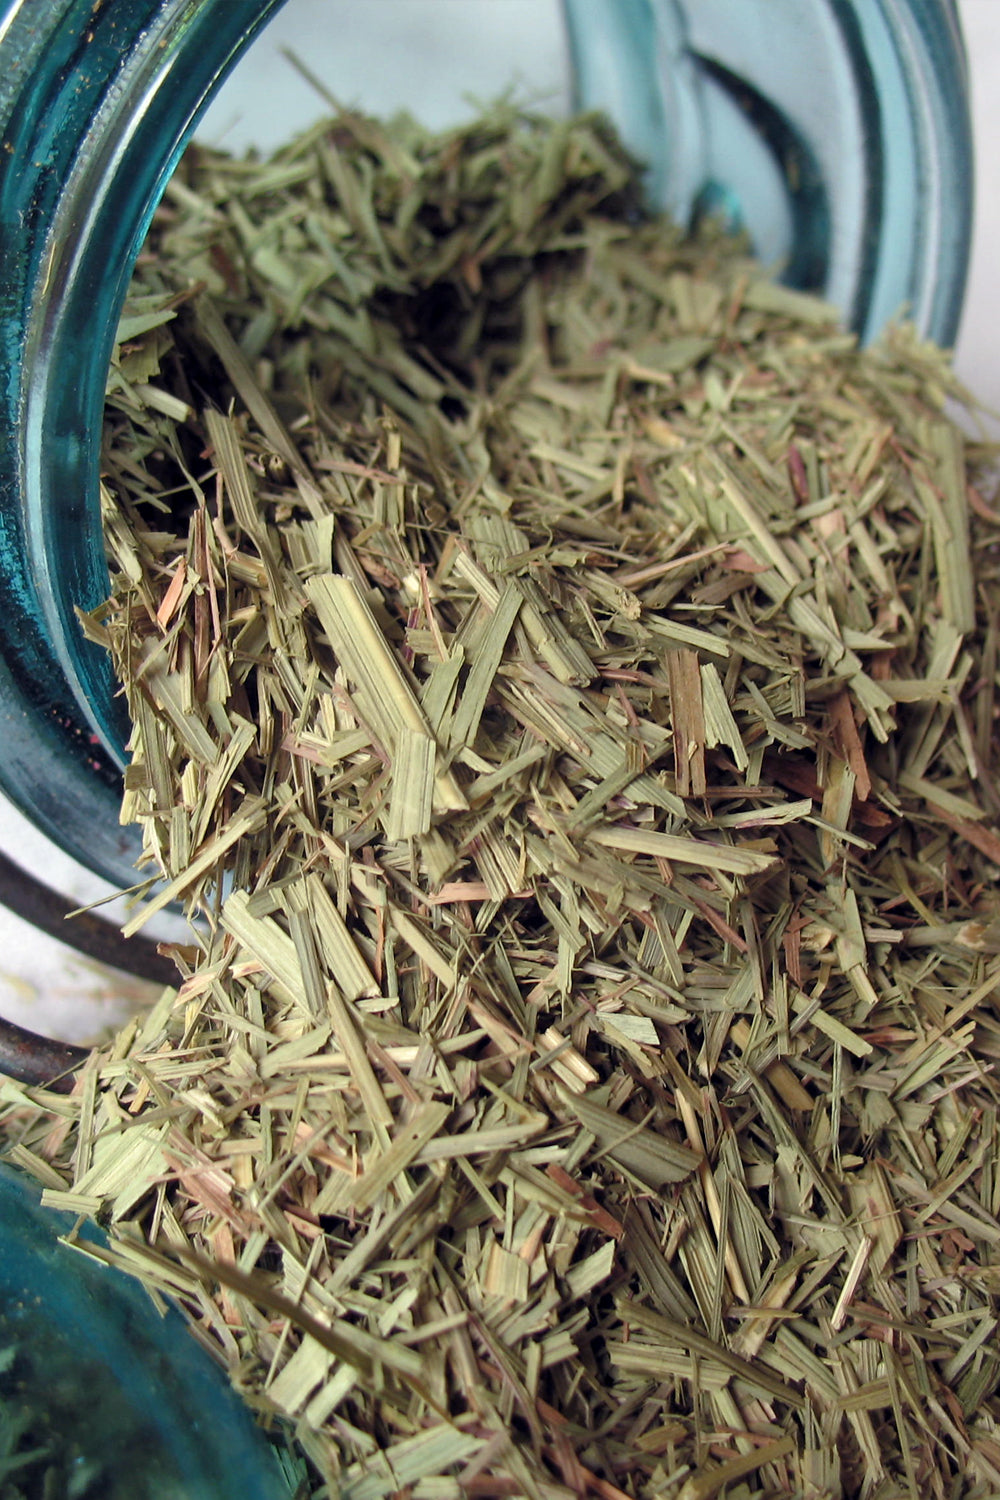 Organic Lemongrass Leaf- Loose Dried Herb (Cymbopogon citratus, syn. Andropogon citratrus) - Lizzy Lane Farm Apothecary